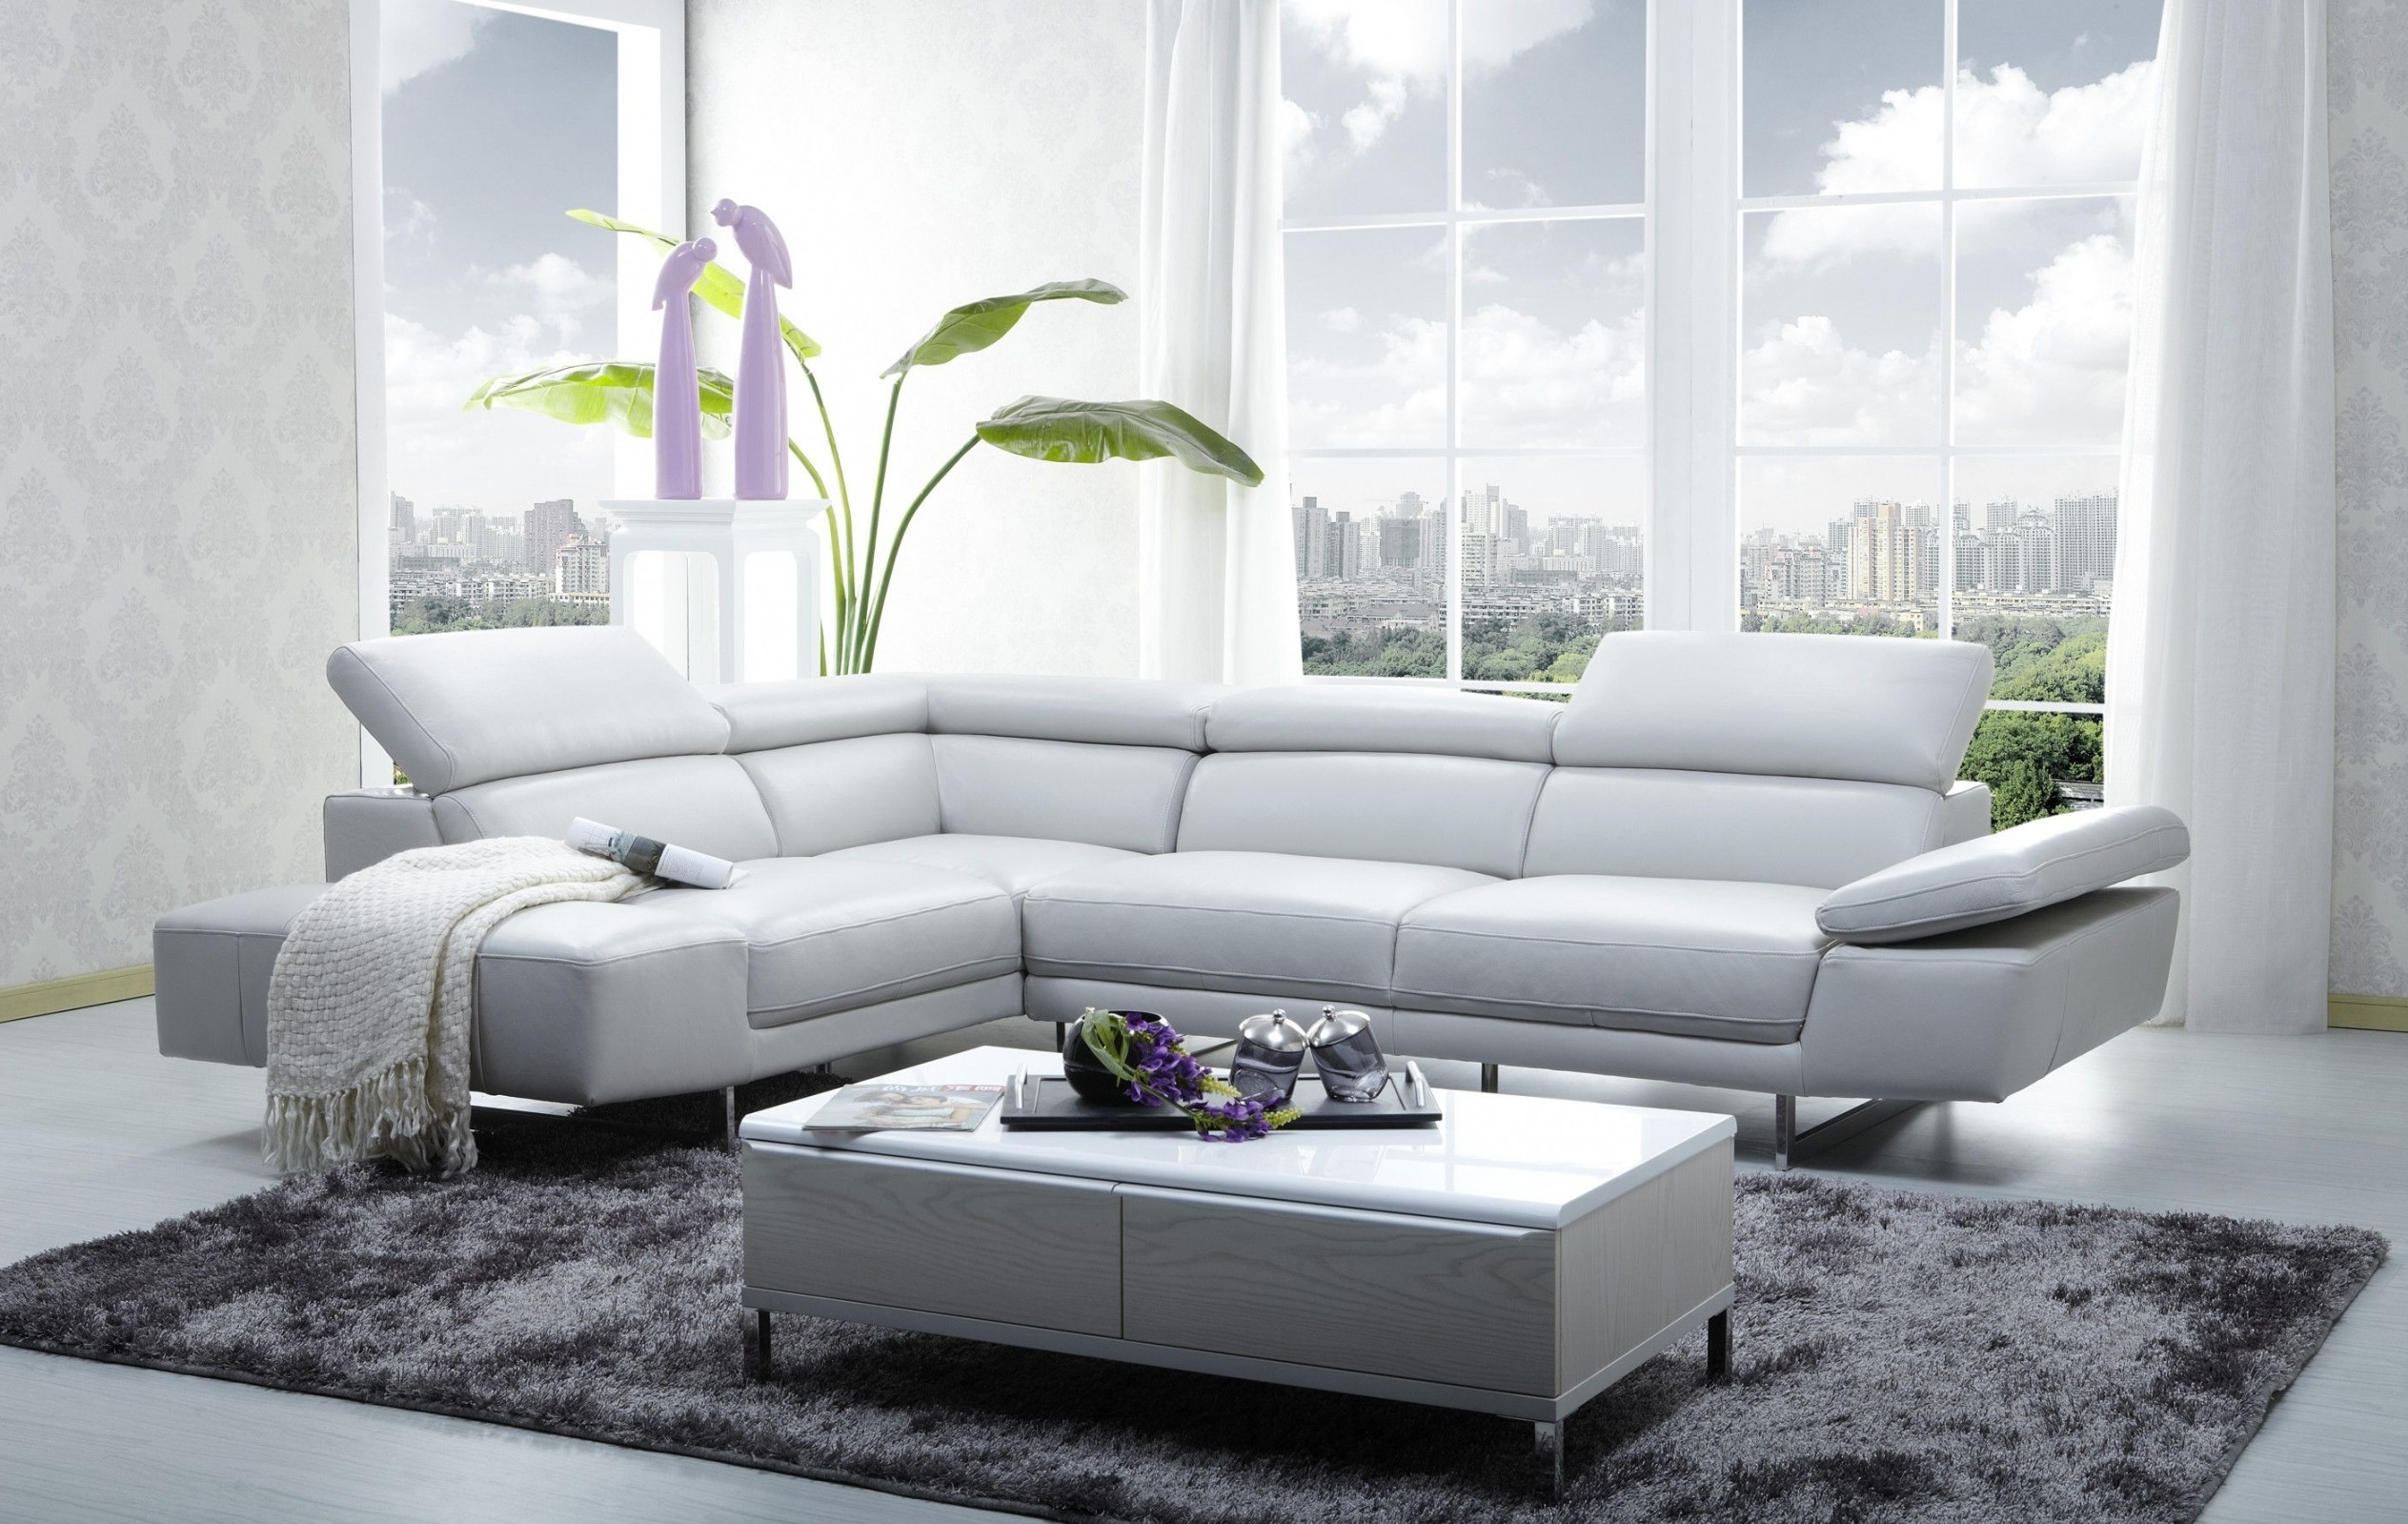 Couches Edmonton Sofas Calgary Leather Sofas Calgary Home Interior